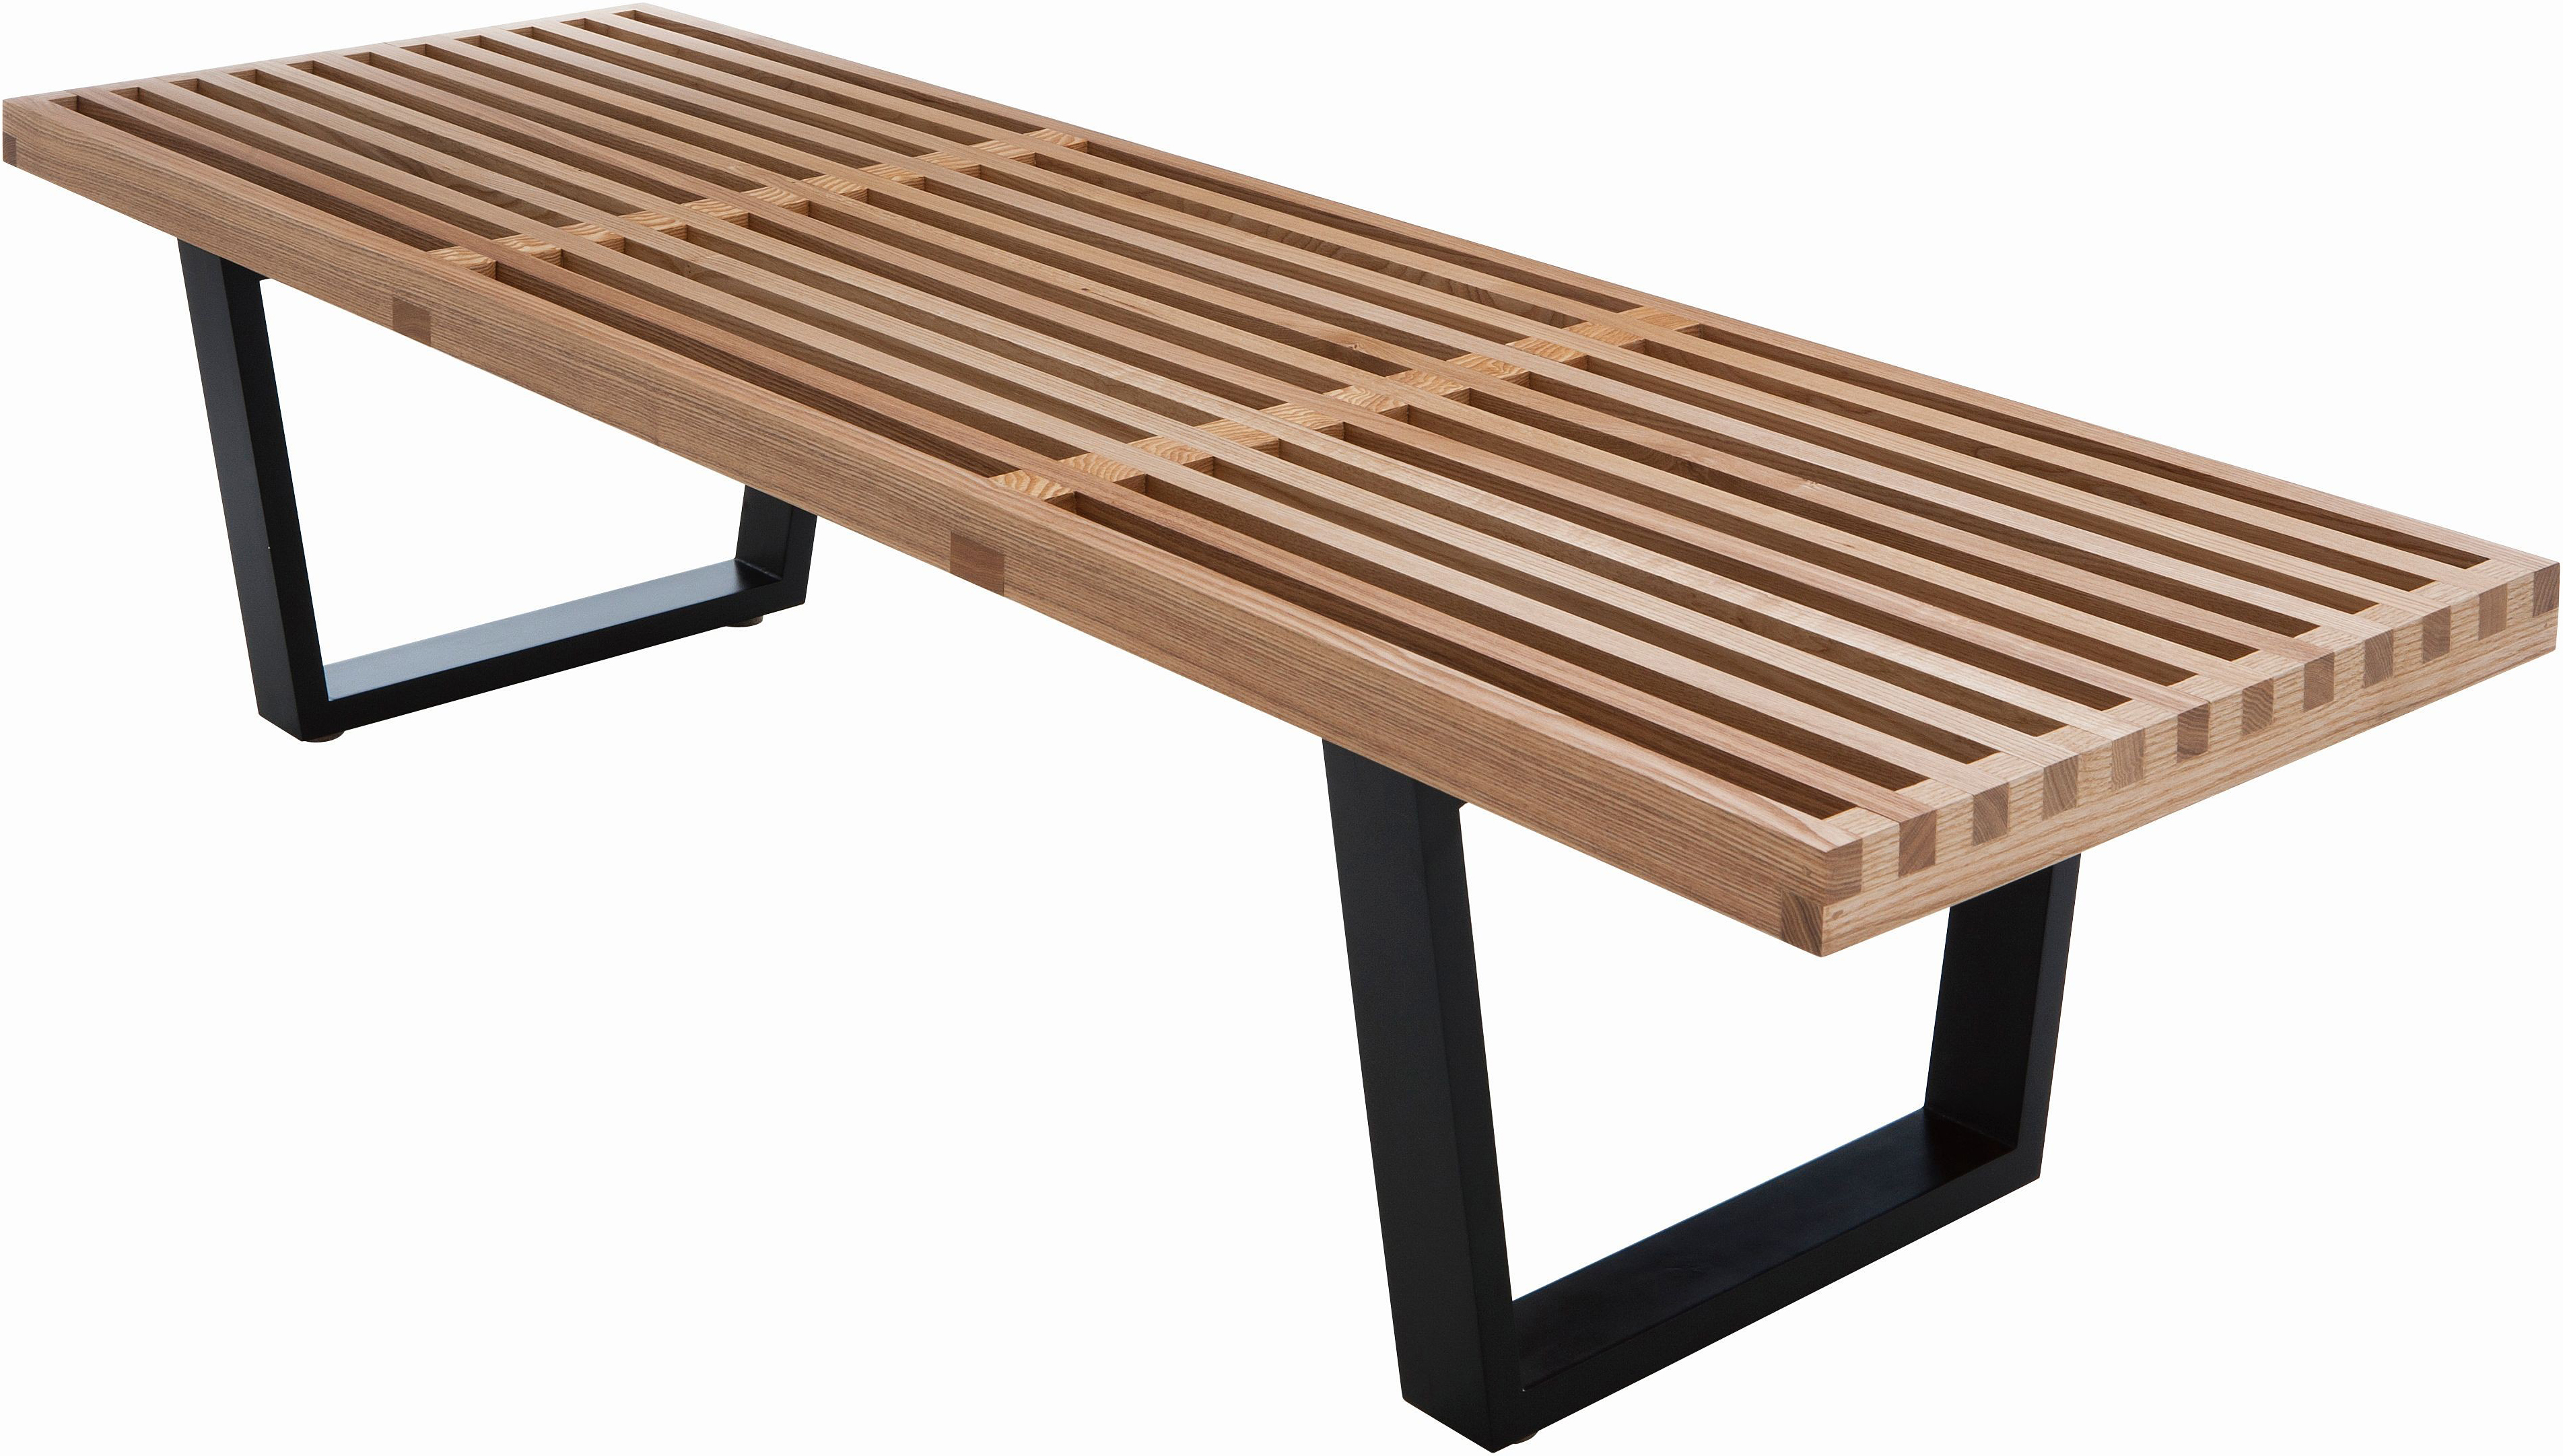 the nuevo tao bench in natural